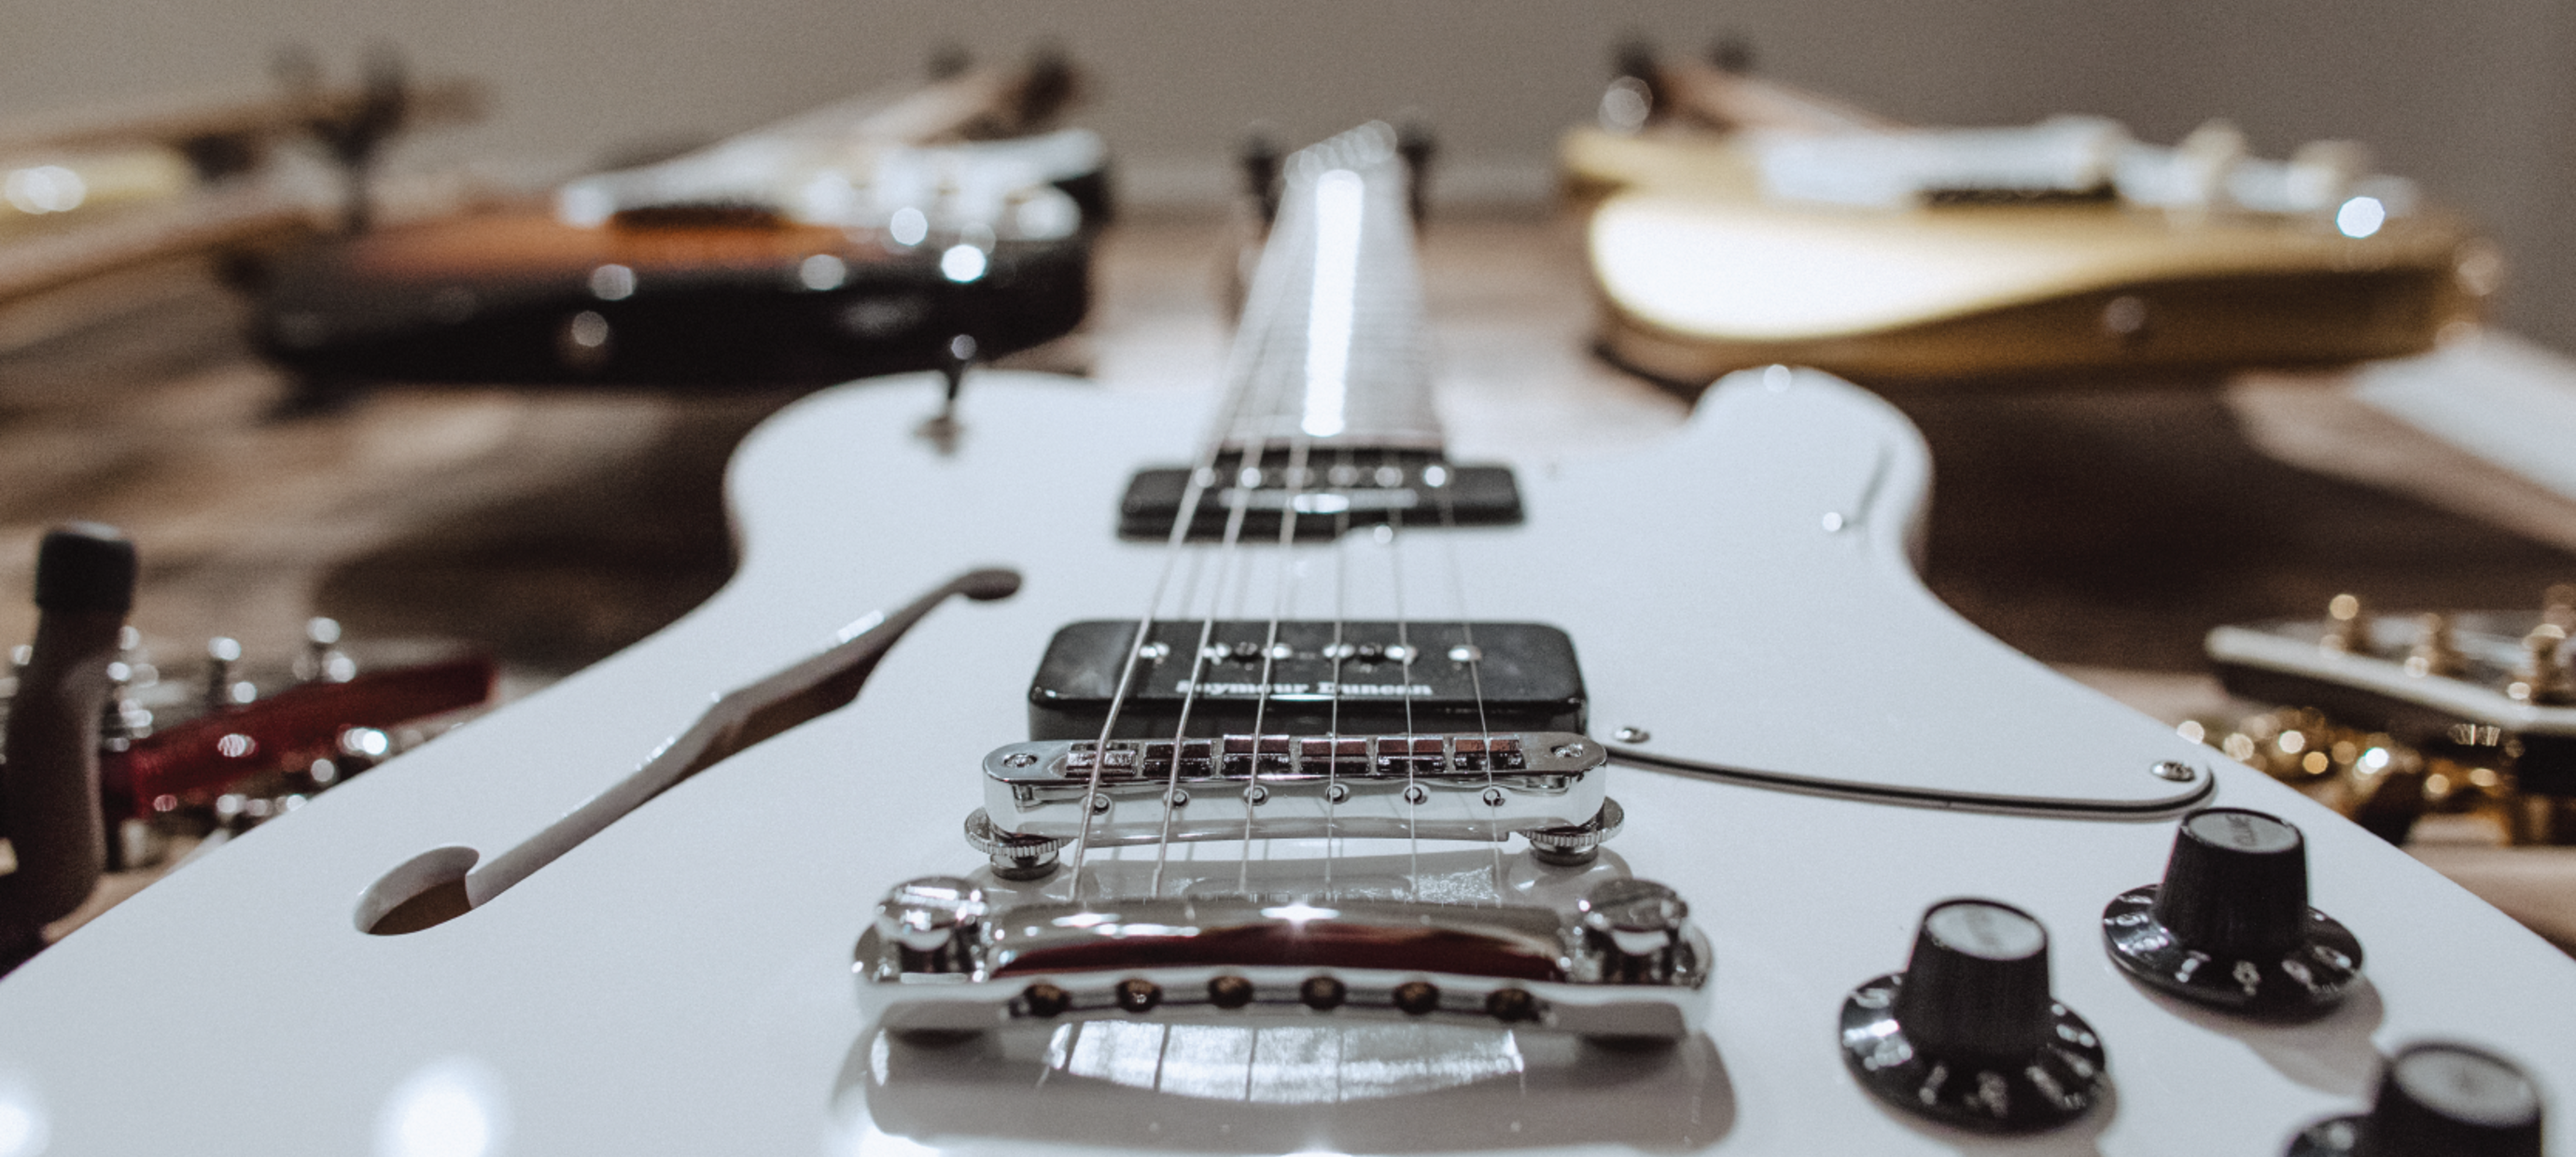 What Makes An Electric Guitar Sound The Way It Does?